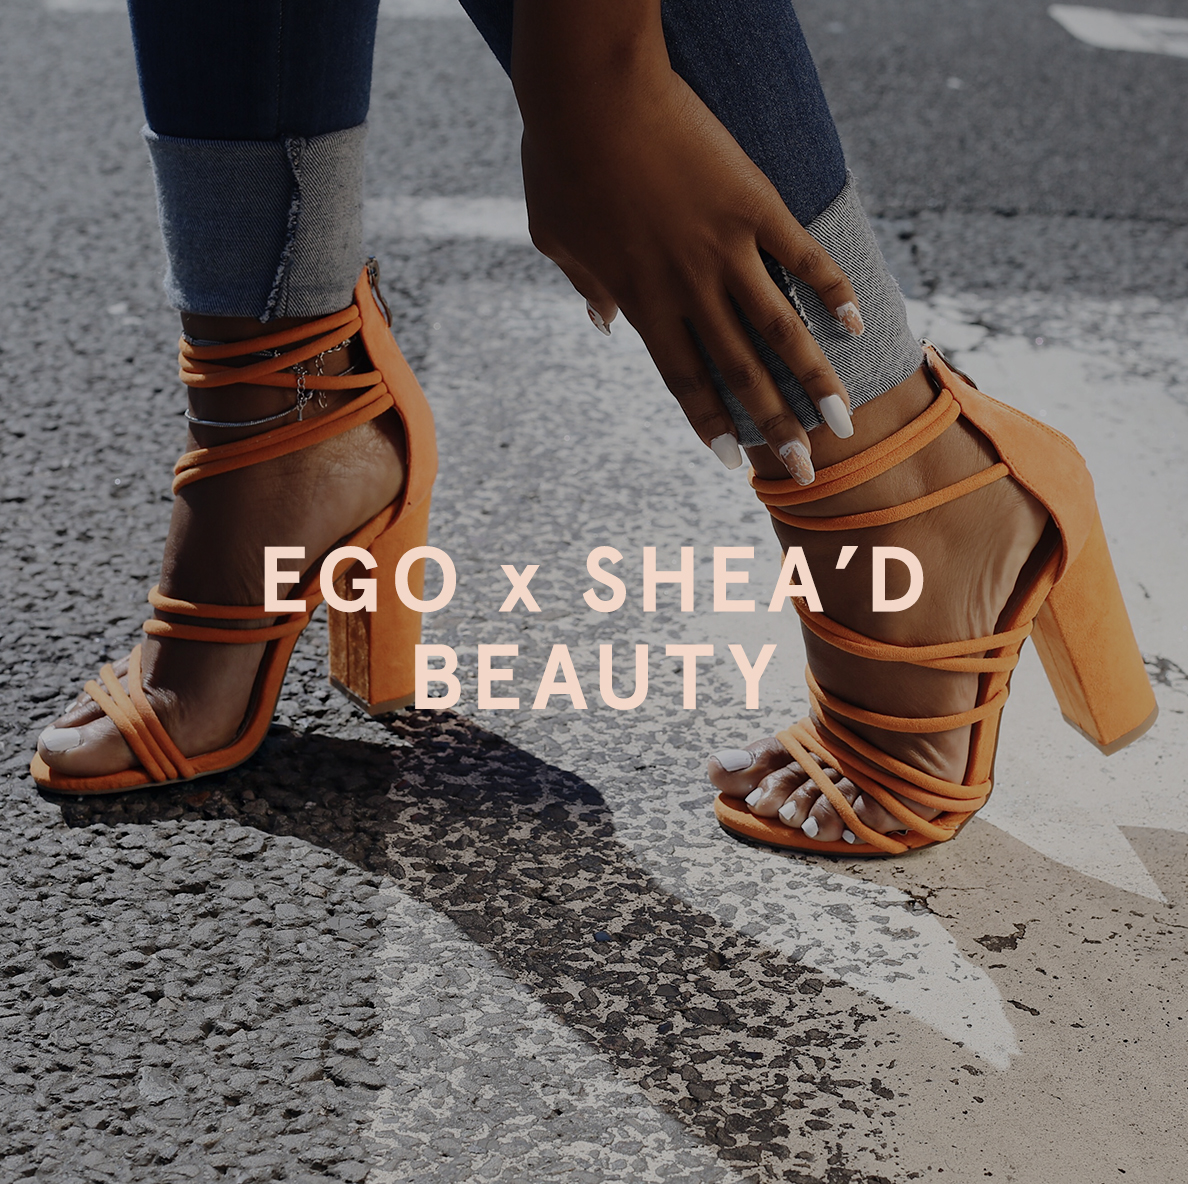 Shead Beauty Ego